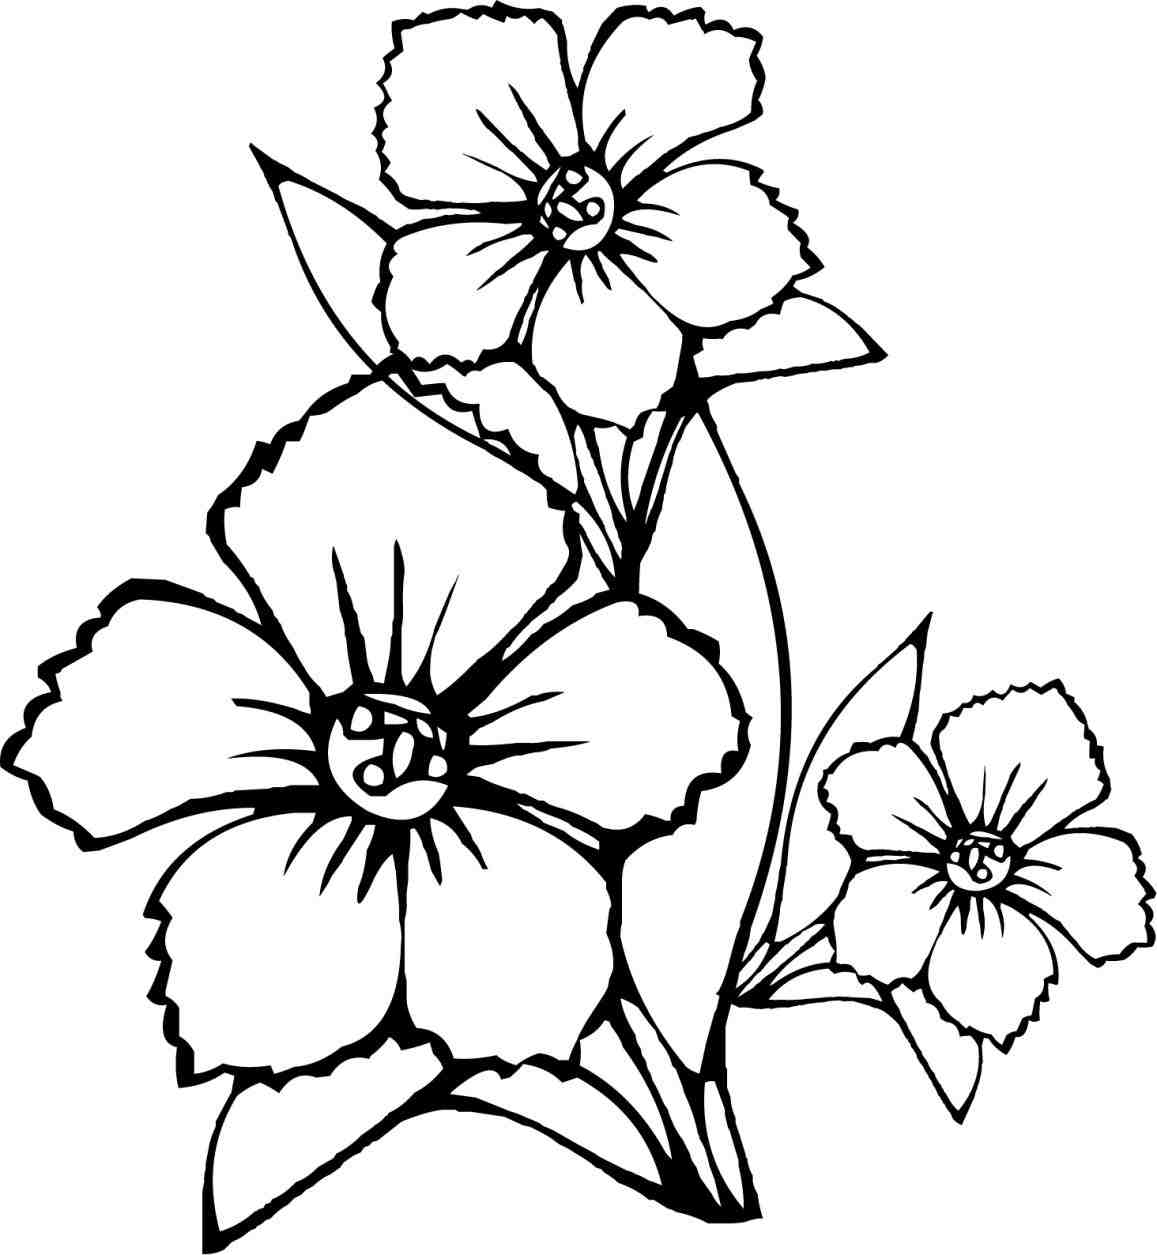 Hawaiian flower drawing free download best hawaiian flower drawing 1157x1255 drawing a hibiscus flower image collections izmirmasajfo Images